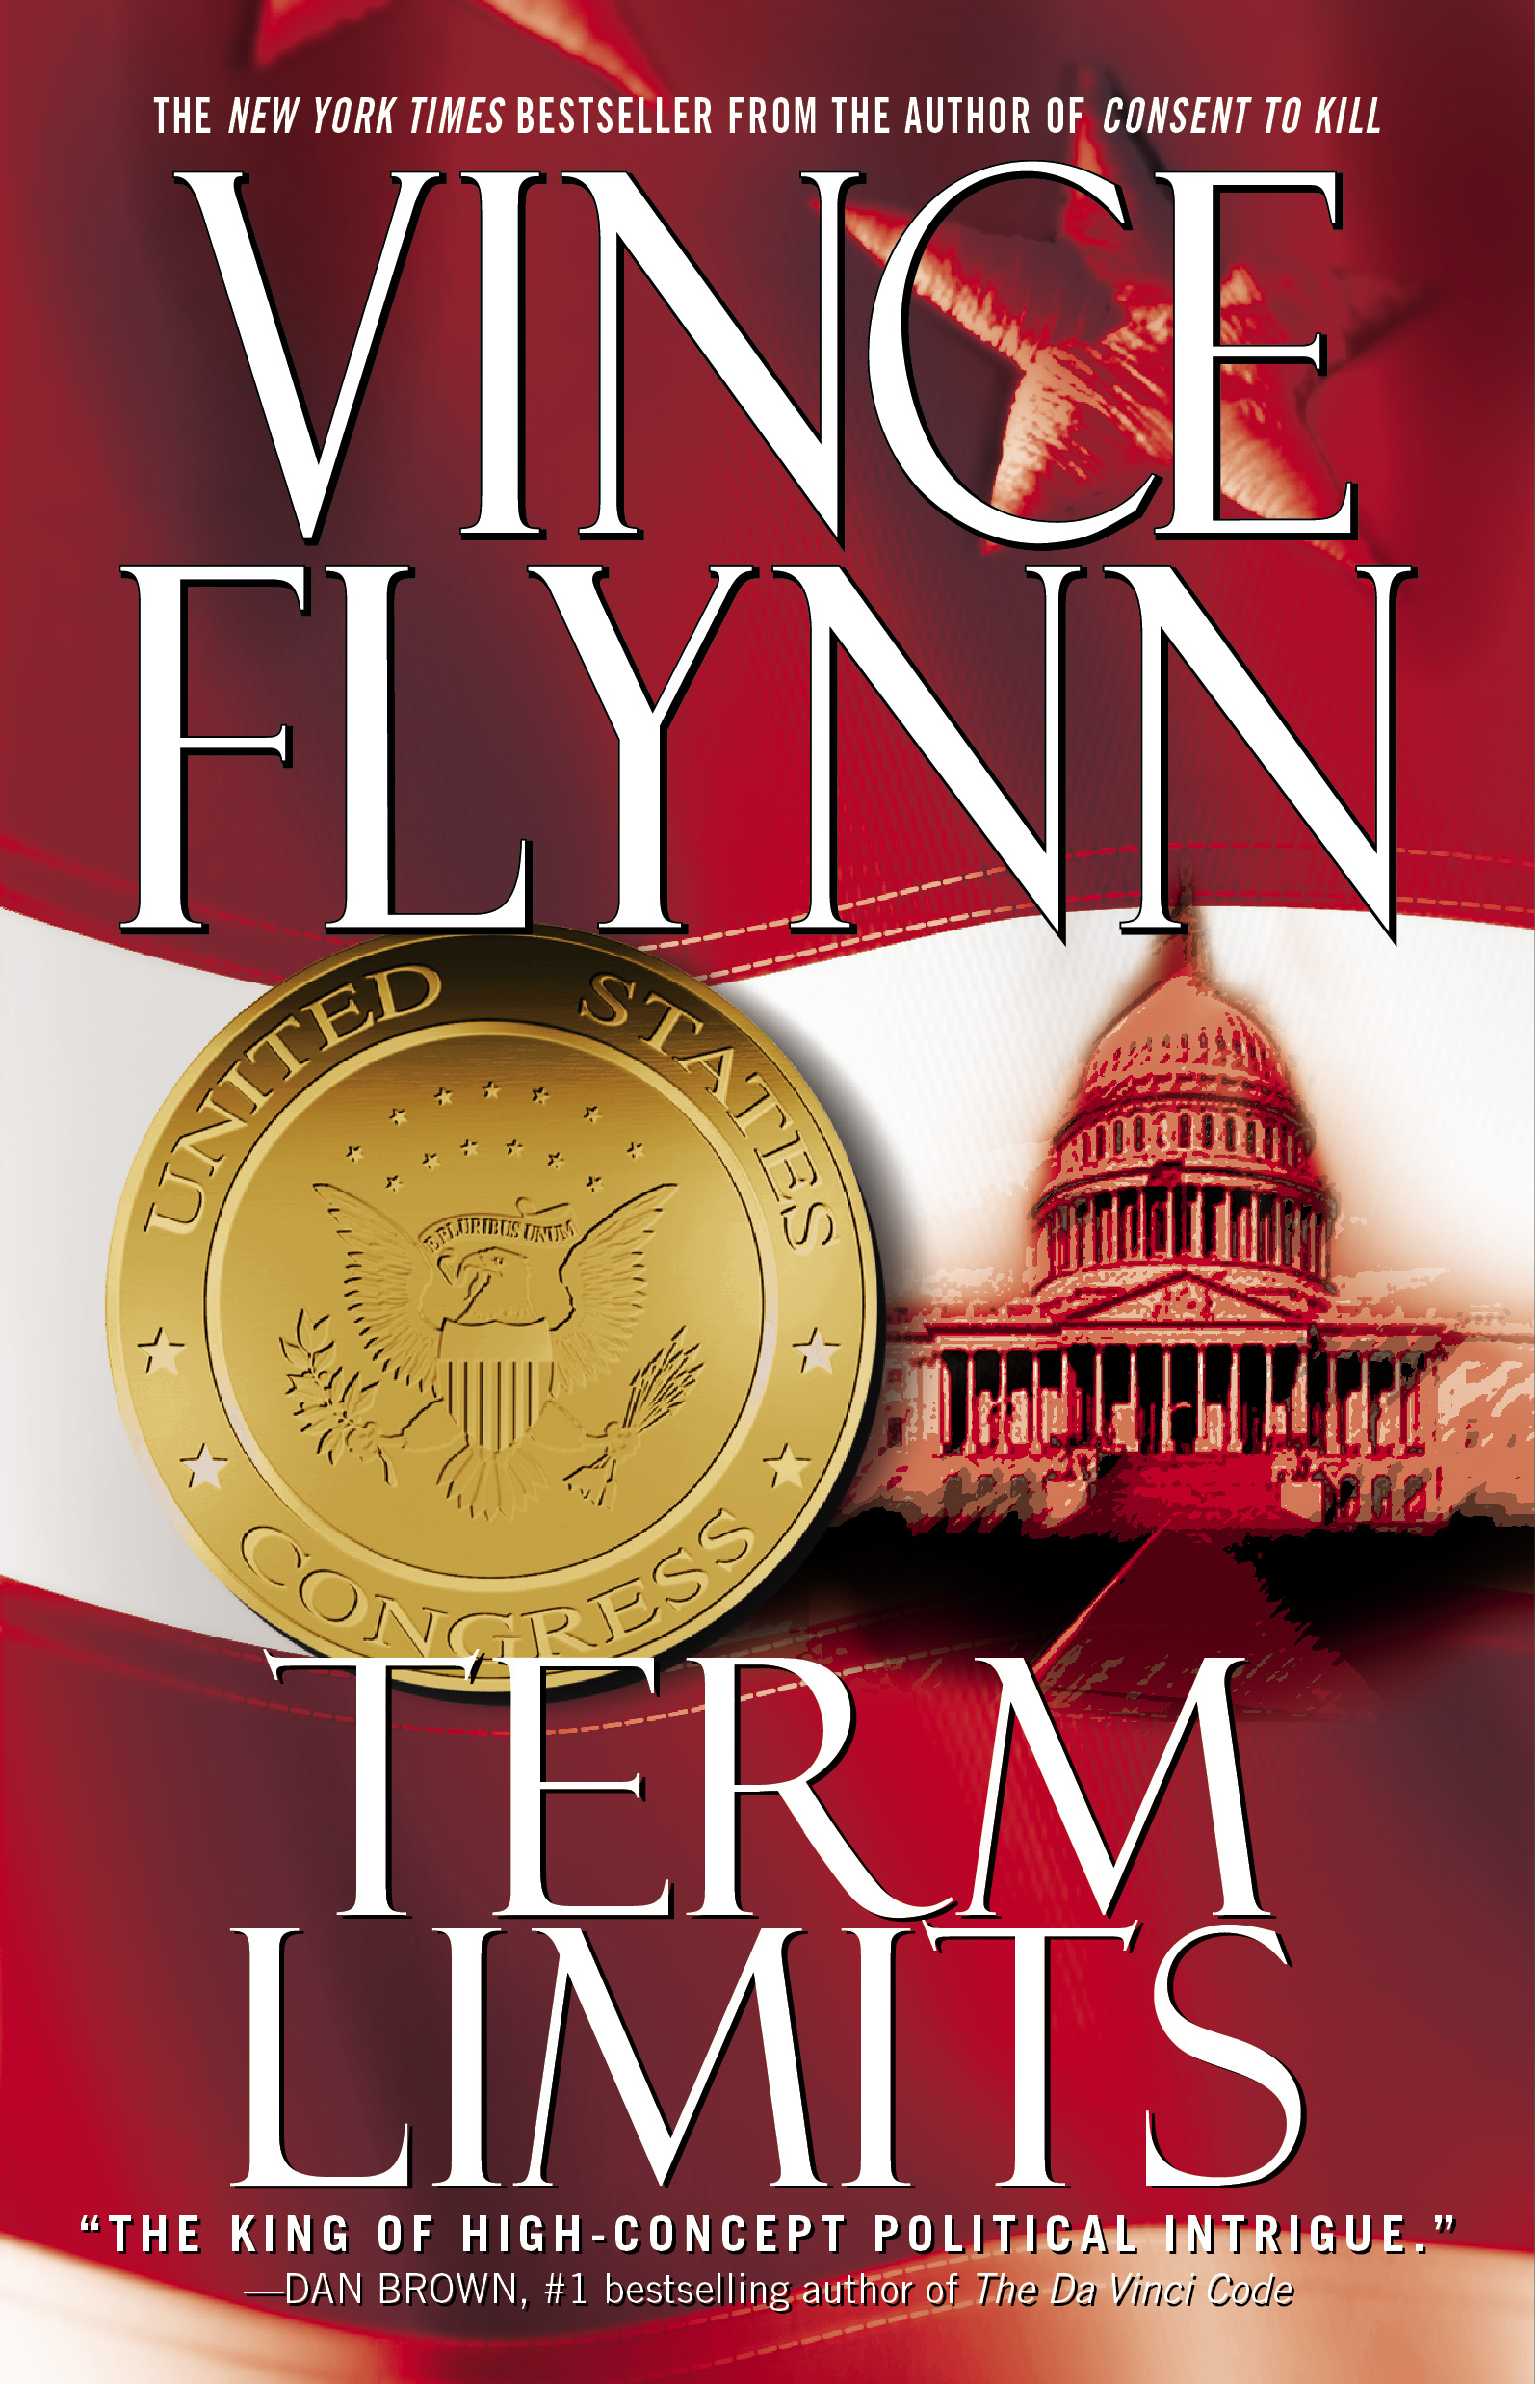 Vince flynn official publisher page simon schuster uk book cover image jpg term limits fandeluxe PDF